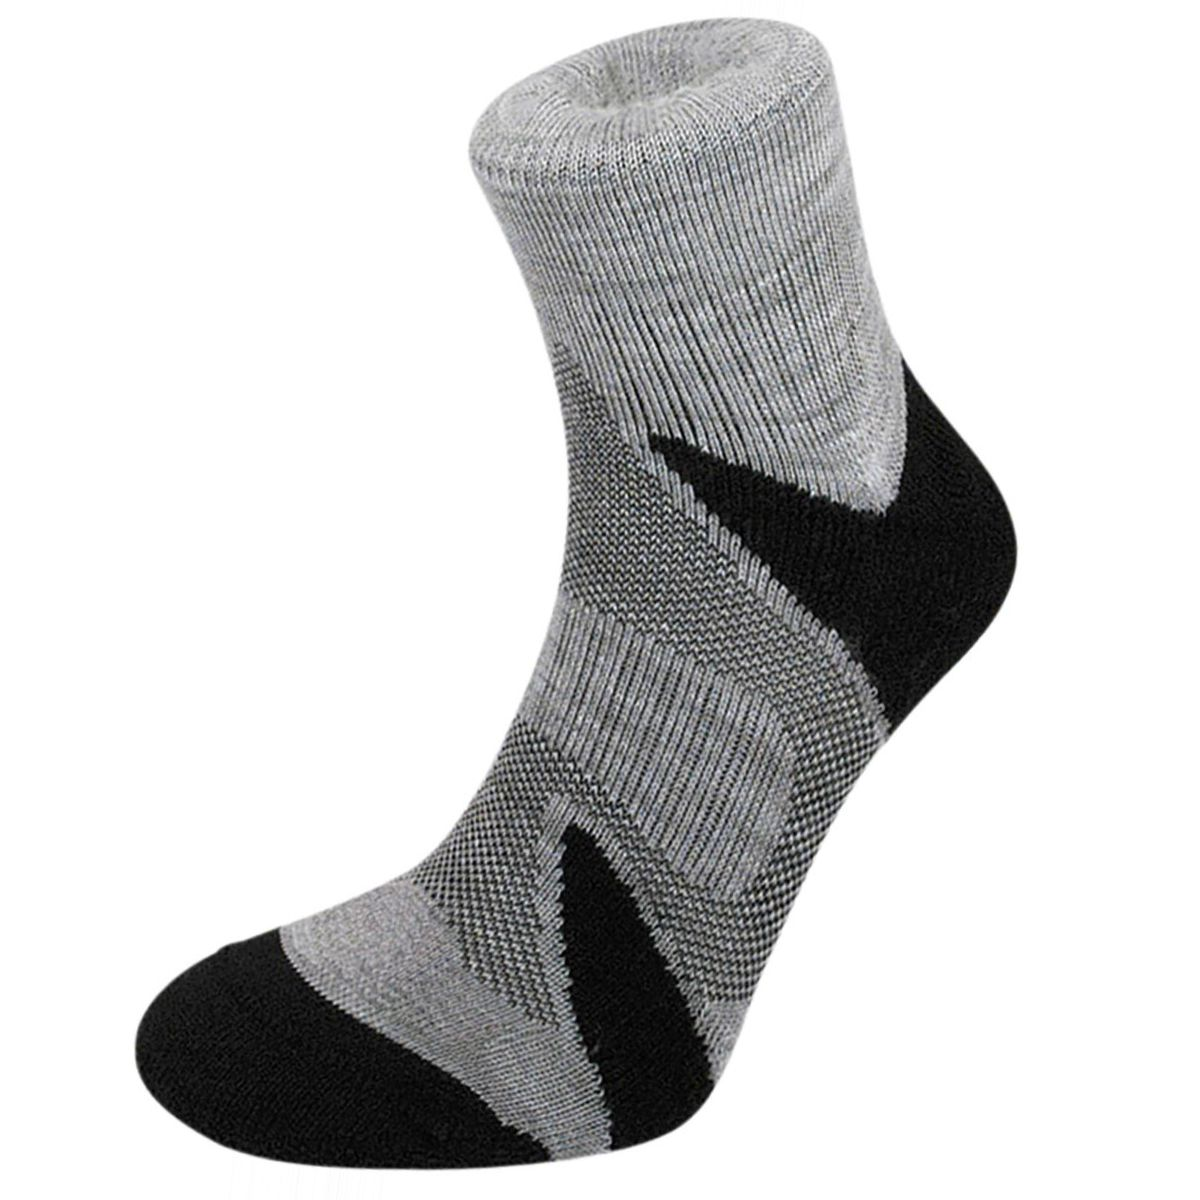 Bridgedale Trail Sport Lightweight Merino Cool Comfort Sock - Men's